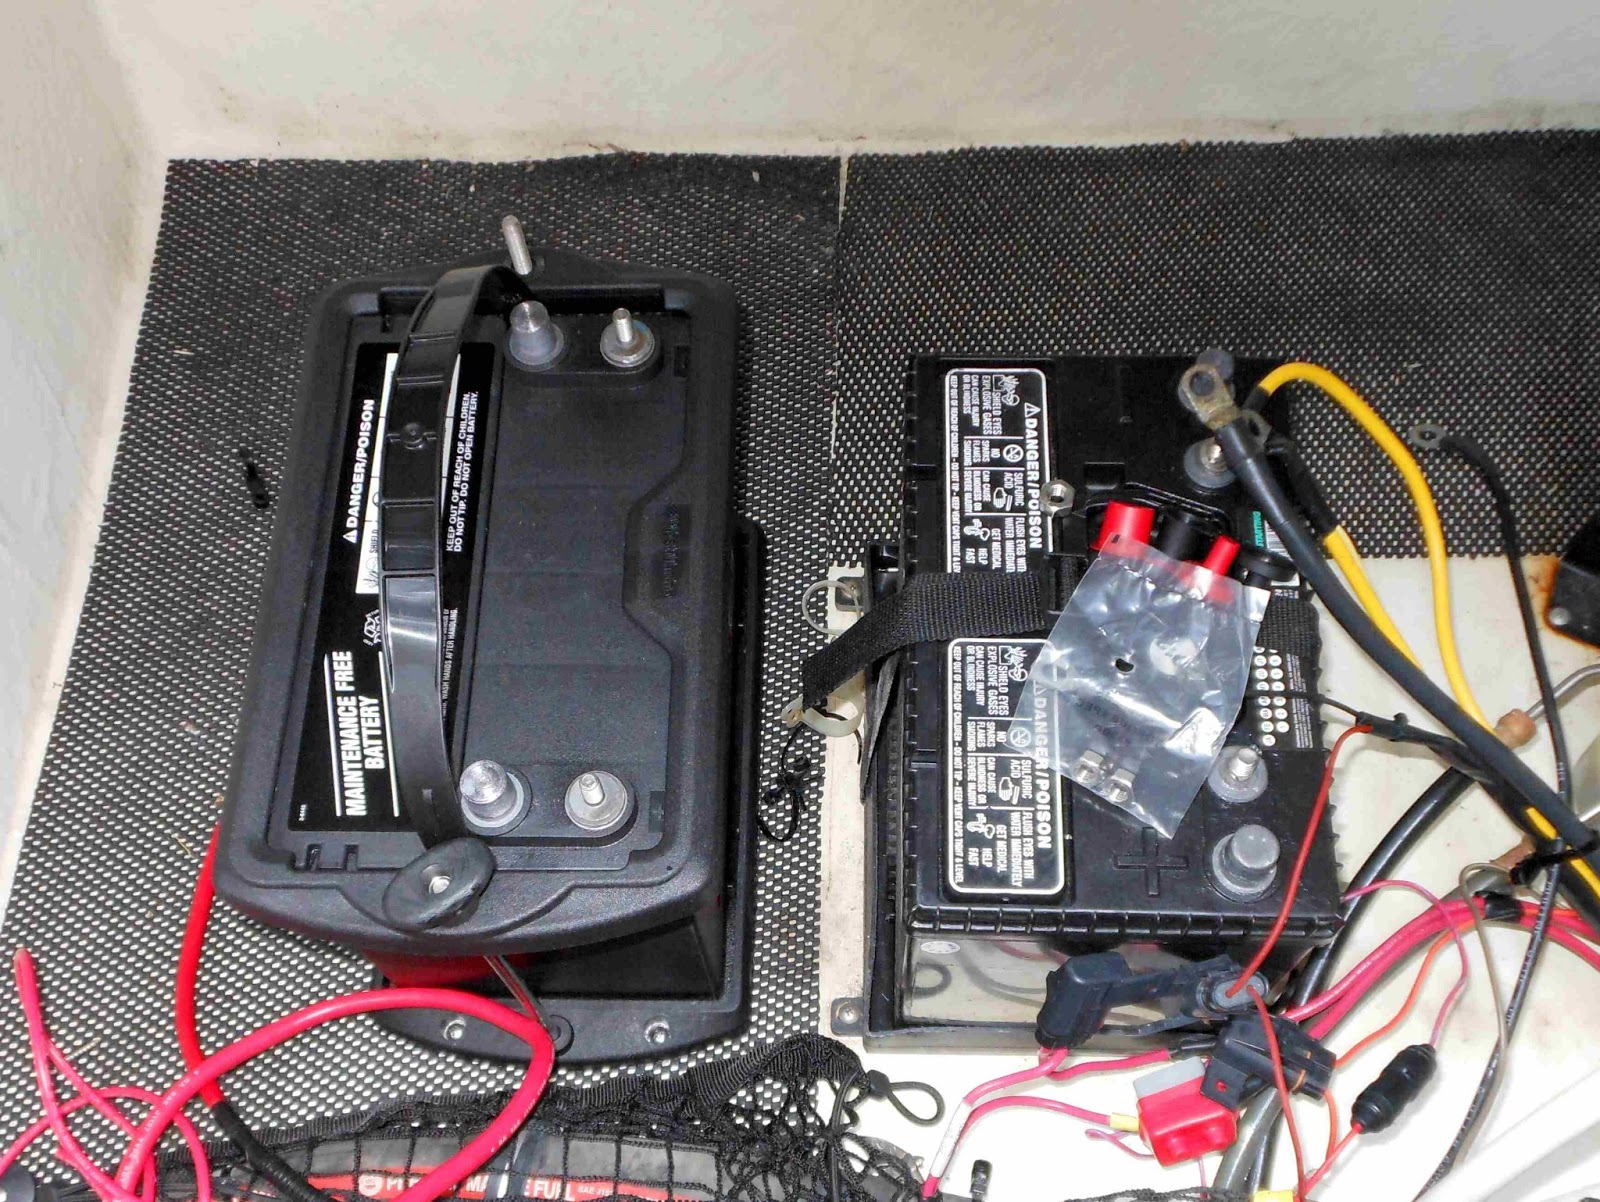 new+battery the marine installer's rant battery installus incompetentous raymarine dragonfly wiring diagram at suagrazia.org